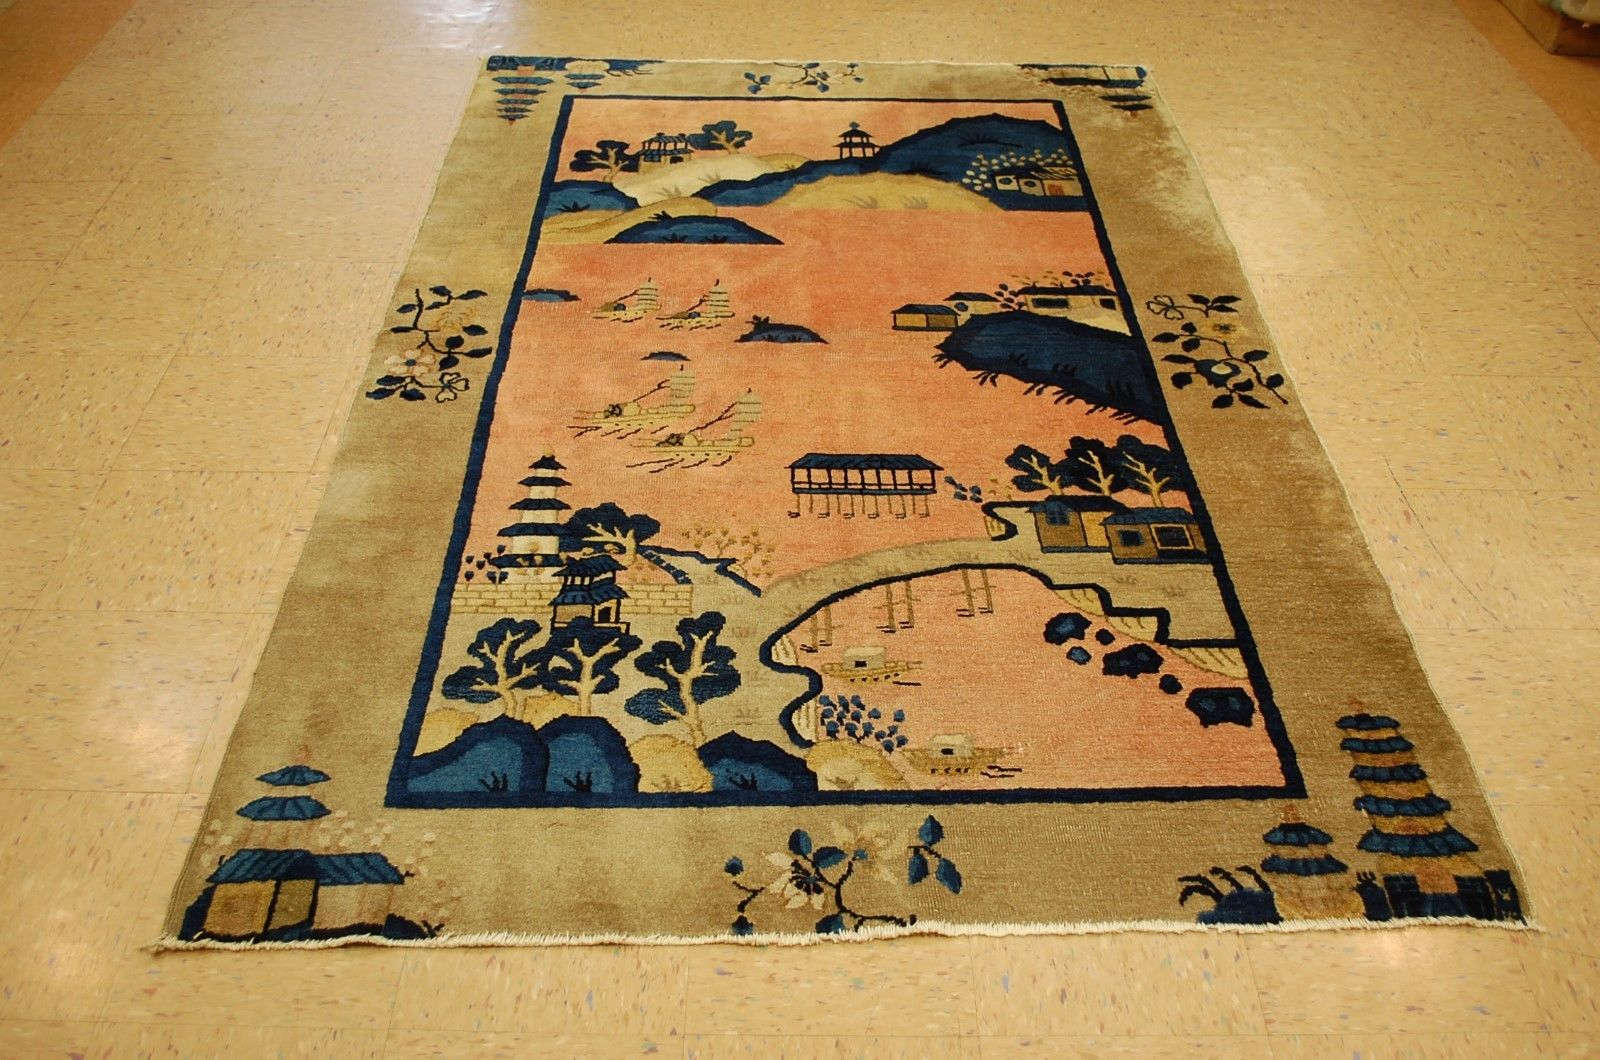 5′ x 7'8 Hand-knotted Circa 1910's Antique Wool Chinese Art Deco Peking Scenery Rug Tapestry Wall Hanging 12980552 (9)